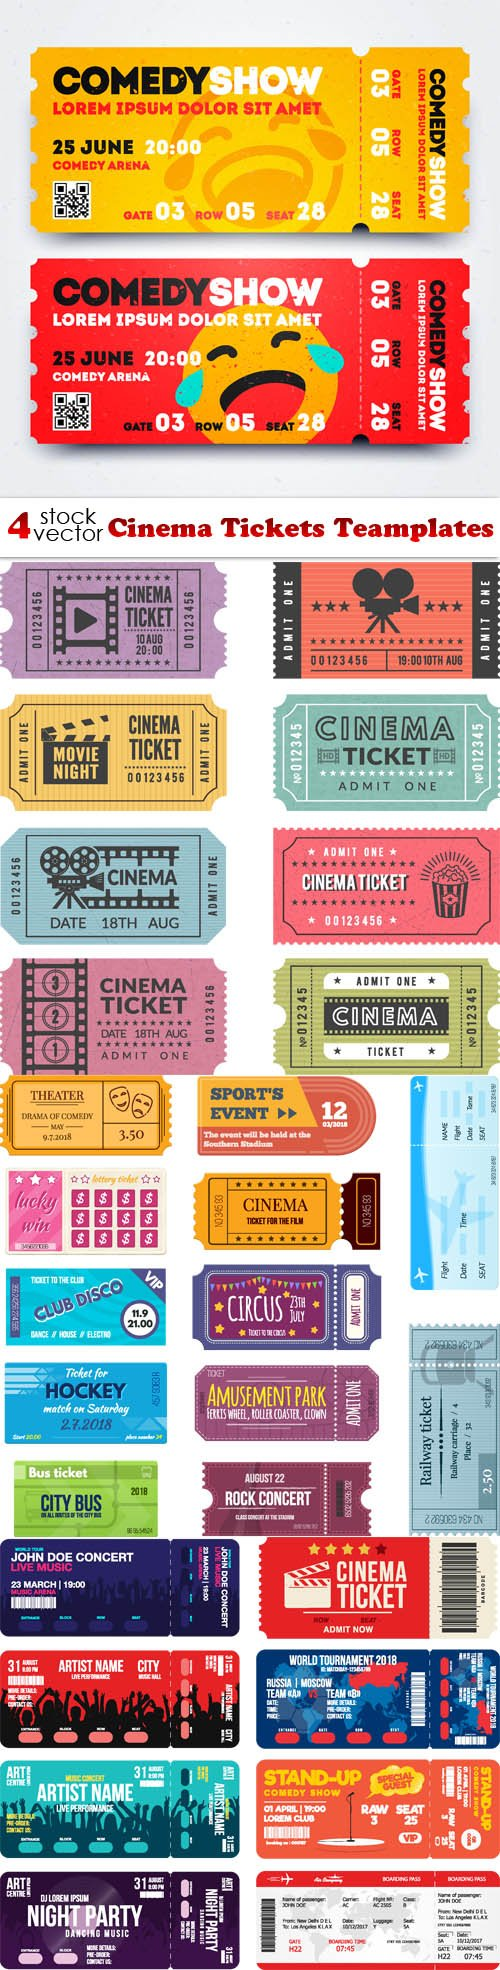 Vectors - Cinema Tickets Teamplates